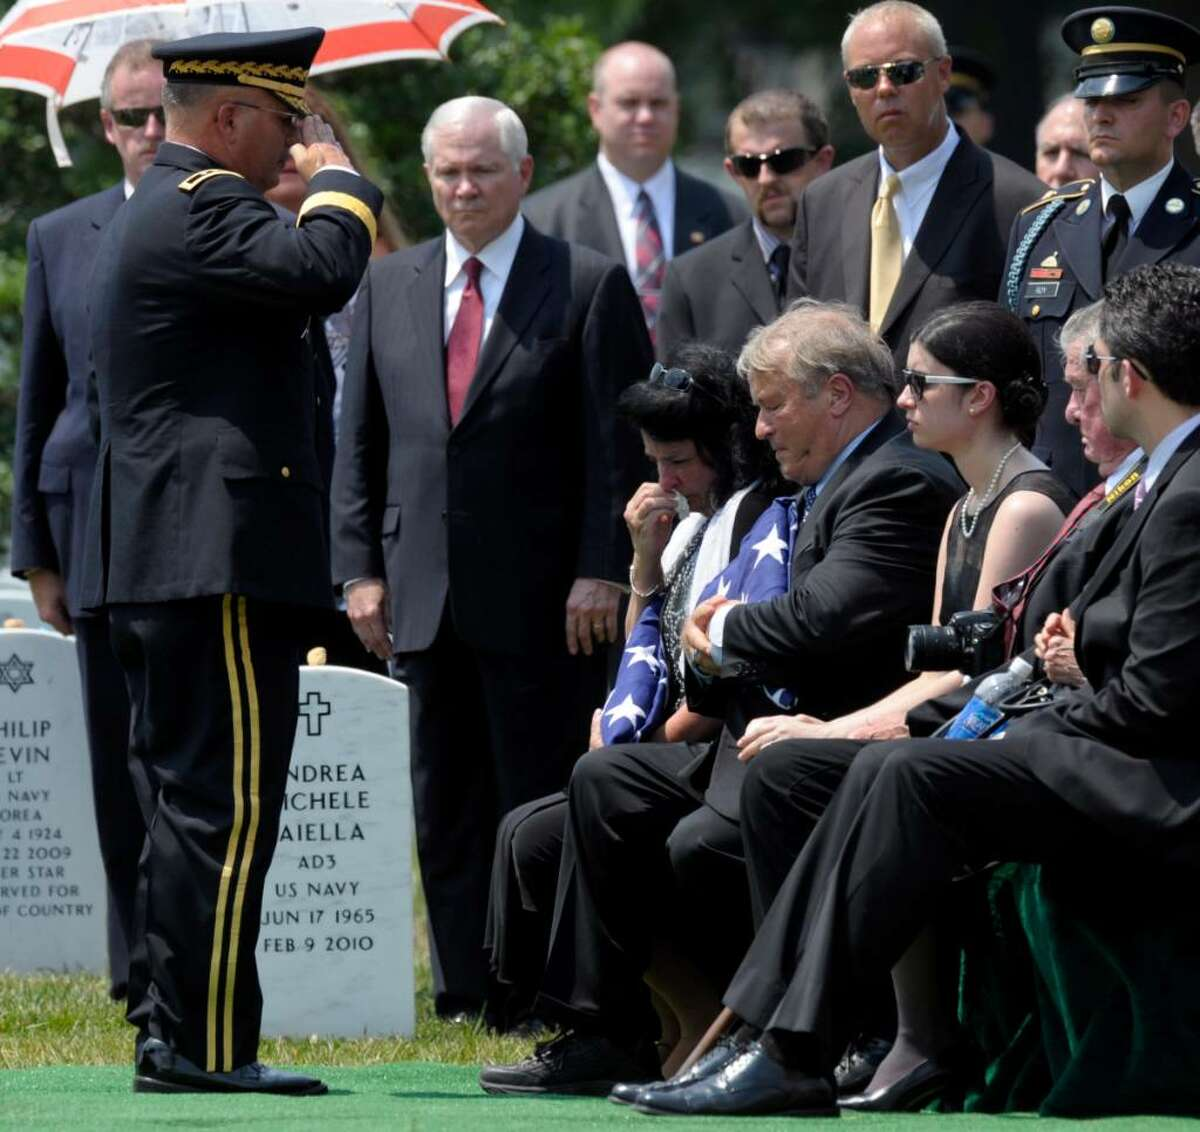 Defense Secretary Robert Gates, center, watches as Maj. Gen. Richard Formica, left, salutes greets Leslie Miller, seated left, and Jesse Miller, seated second from left, parents of Army Pfc. David Taylor Miller, during his funeral service at Arlington National Cemetery in Arlington, Va., Wednesday, July 28, 2010. Miller of Wilton died June 21 in Afghanistan. (AP Photo/Susan Walsh)